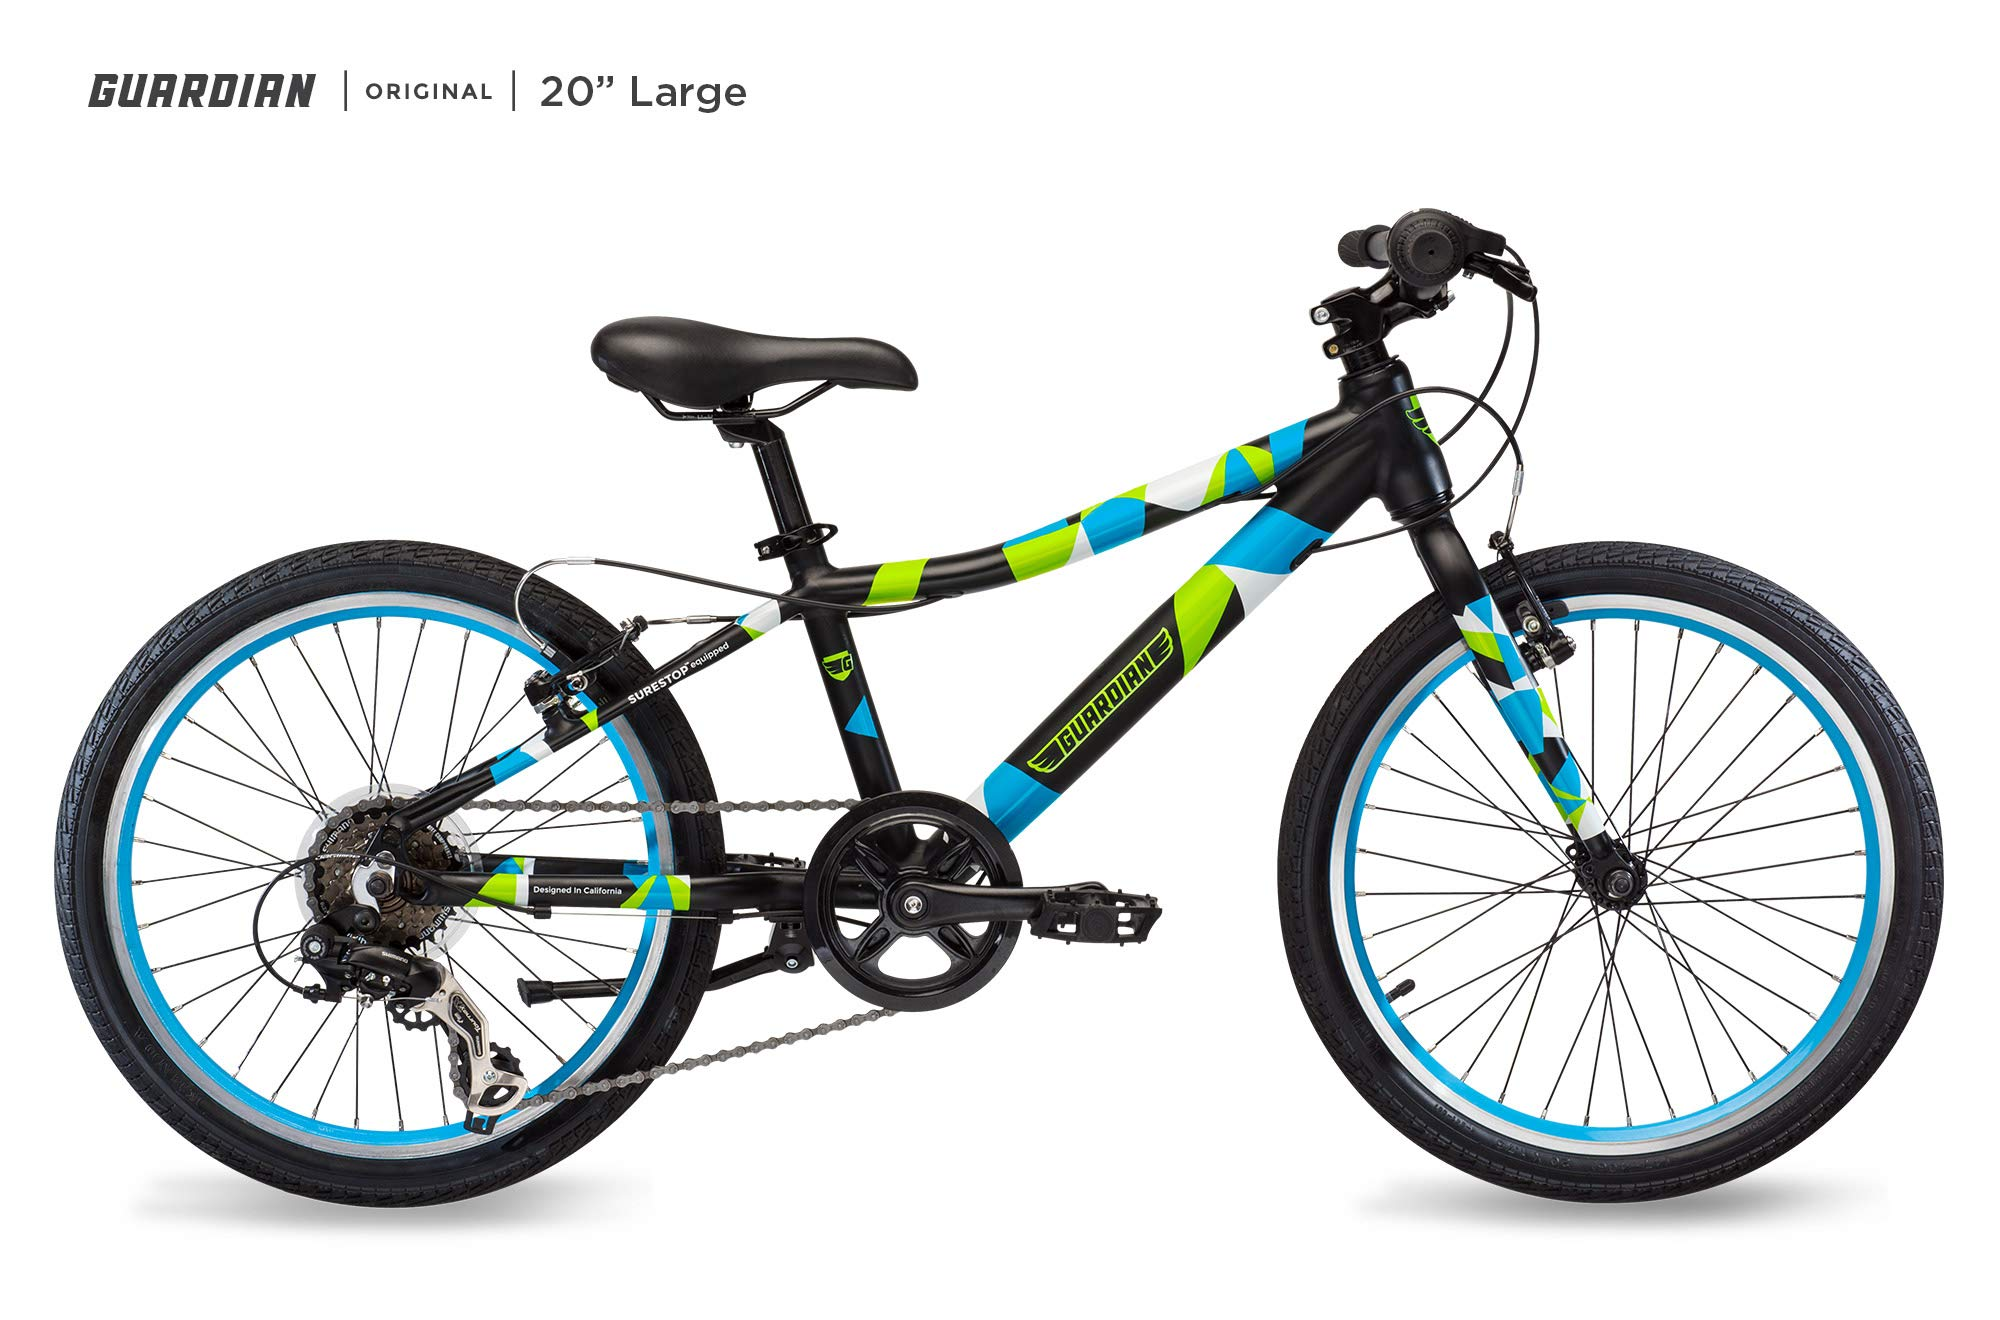 Guardian Lightweight Kids Bike 20 Inch, Safe Patented SureStop Brake System, Kids Mountain Bike, Bike Sizes for Kids 3' 9'' - 4' 5'', Boys Bikes and Girls Bikes